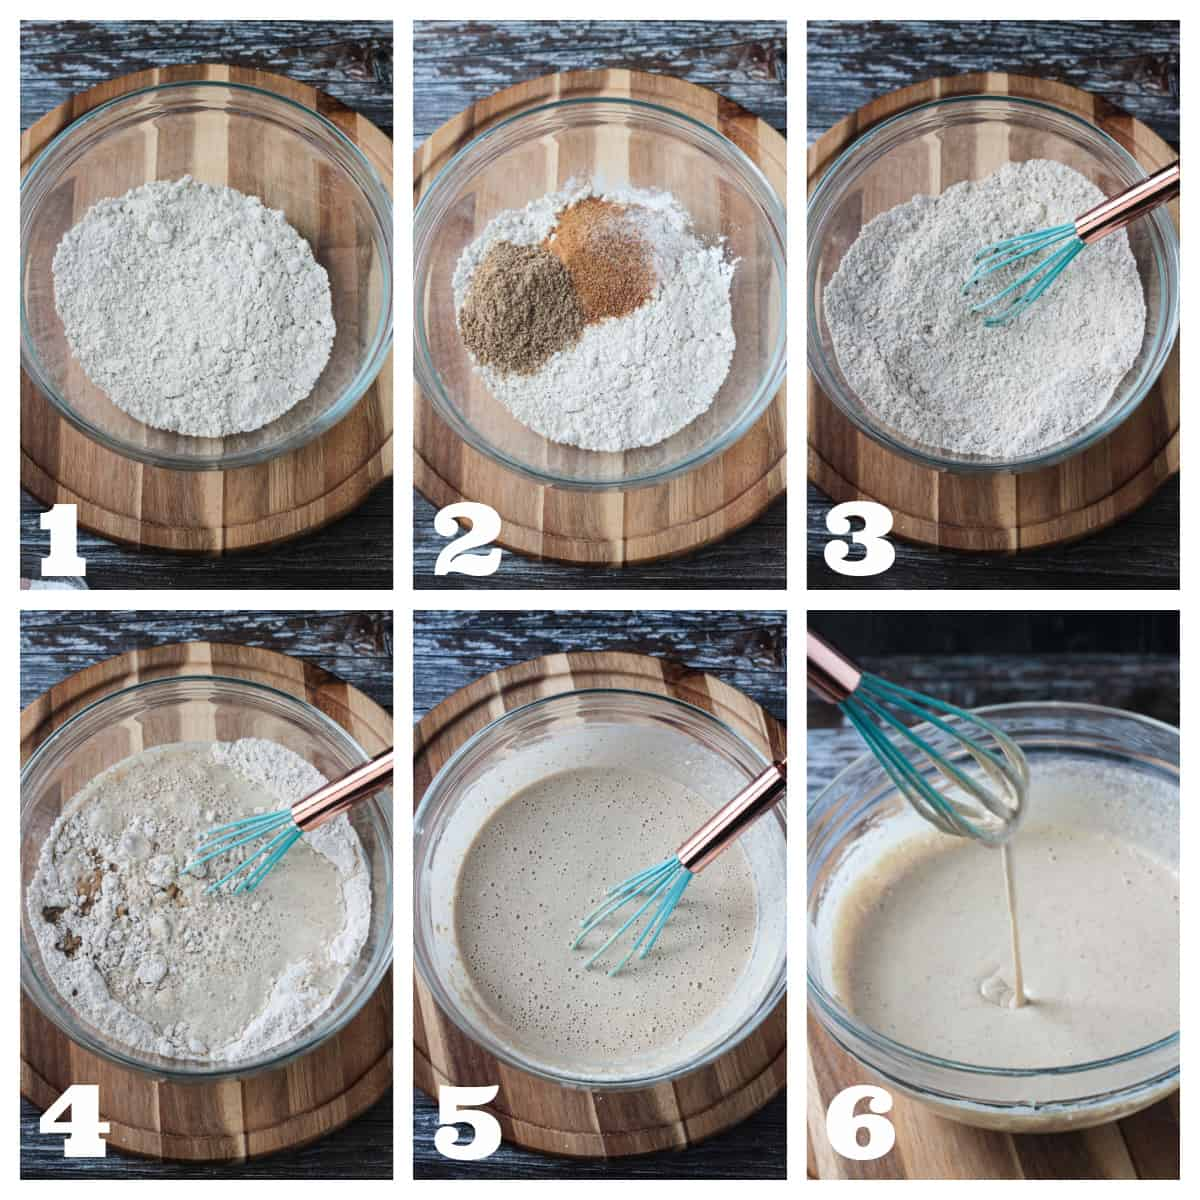 6 photo collage of prepping and whisking the pancake batter.